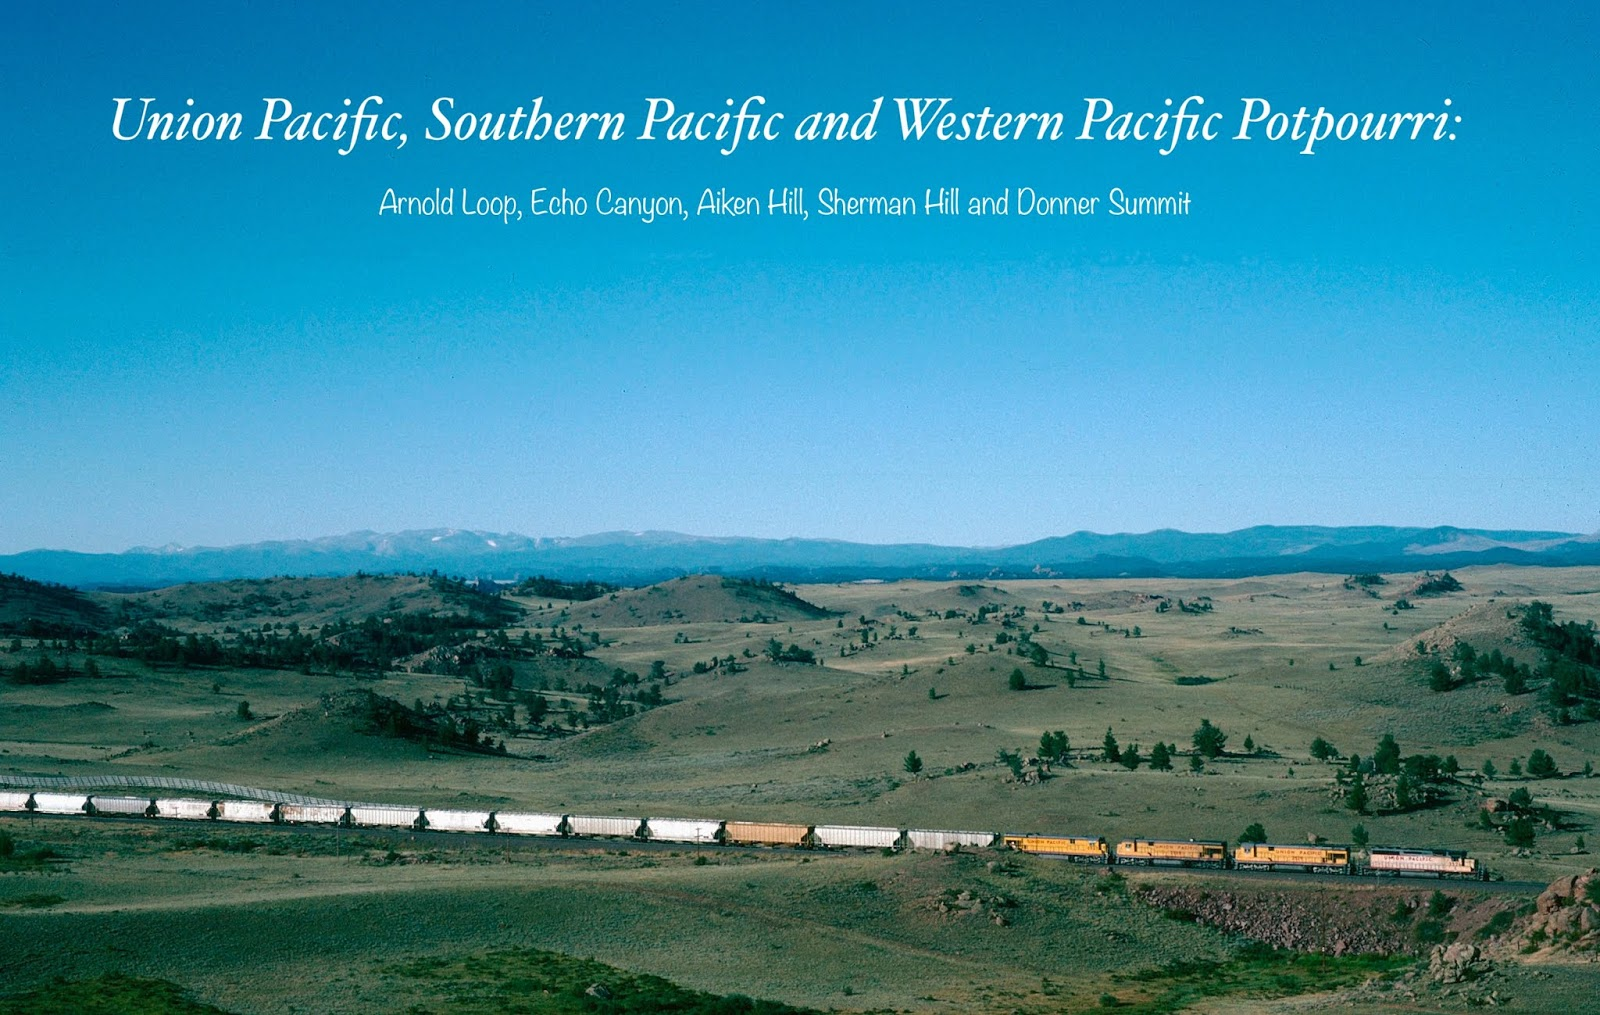 WaltersRail : Union Pacific, Southern Pacific and Western